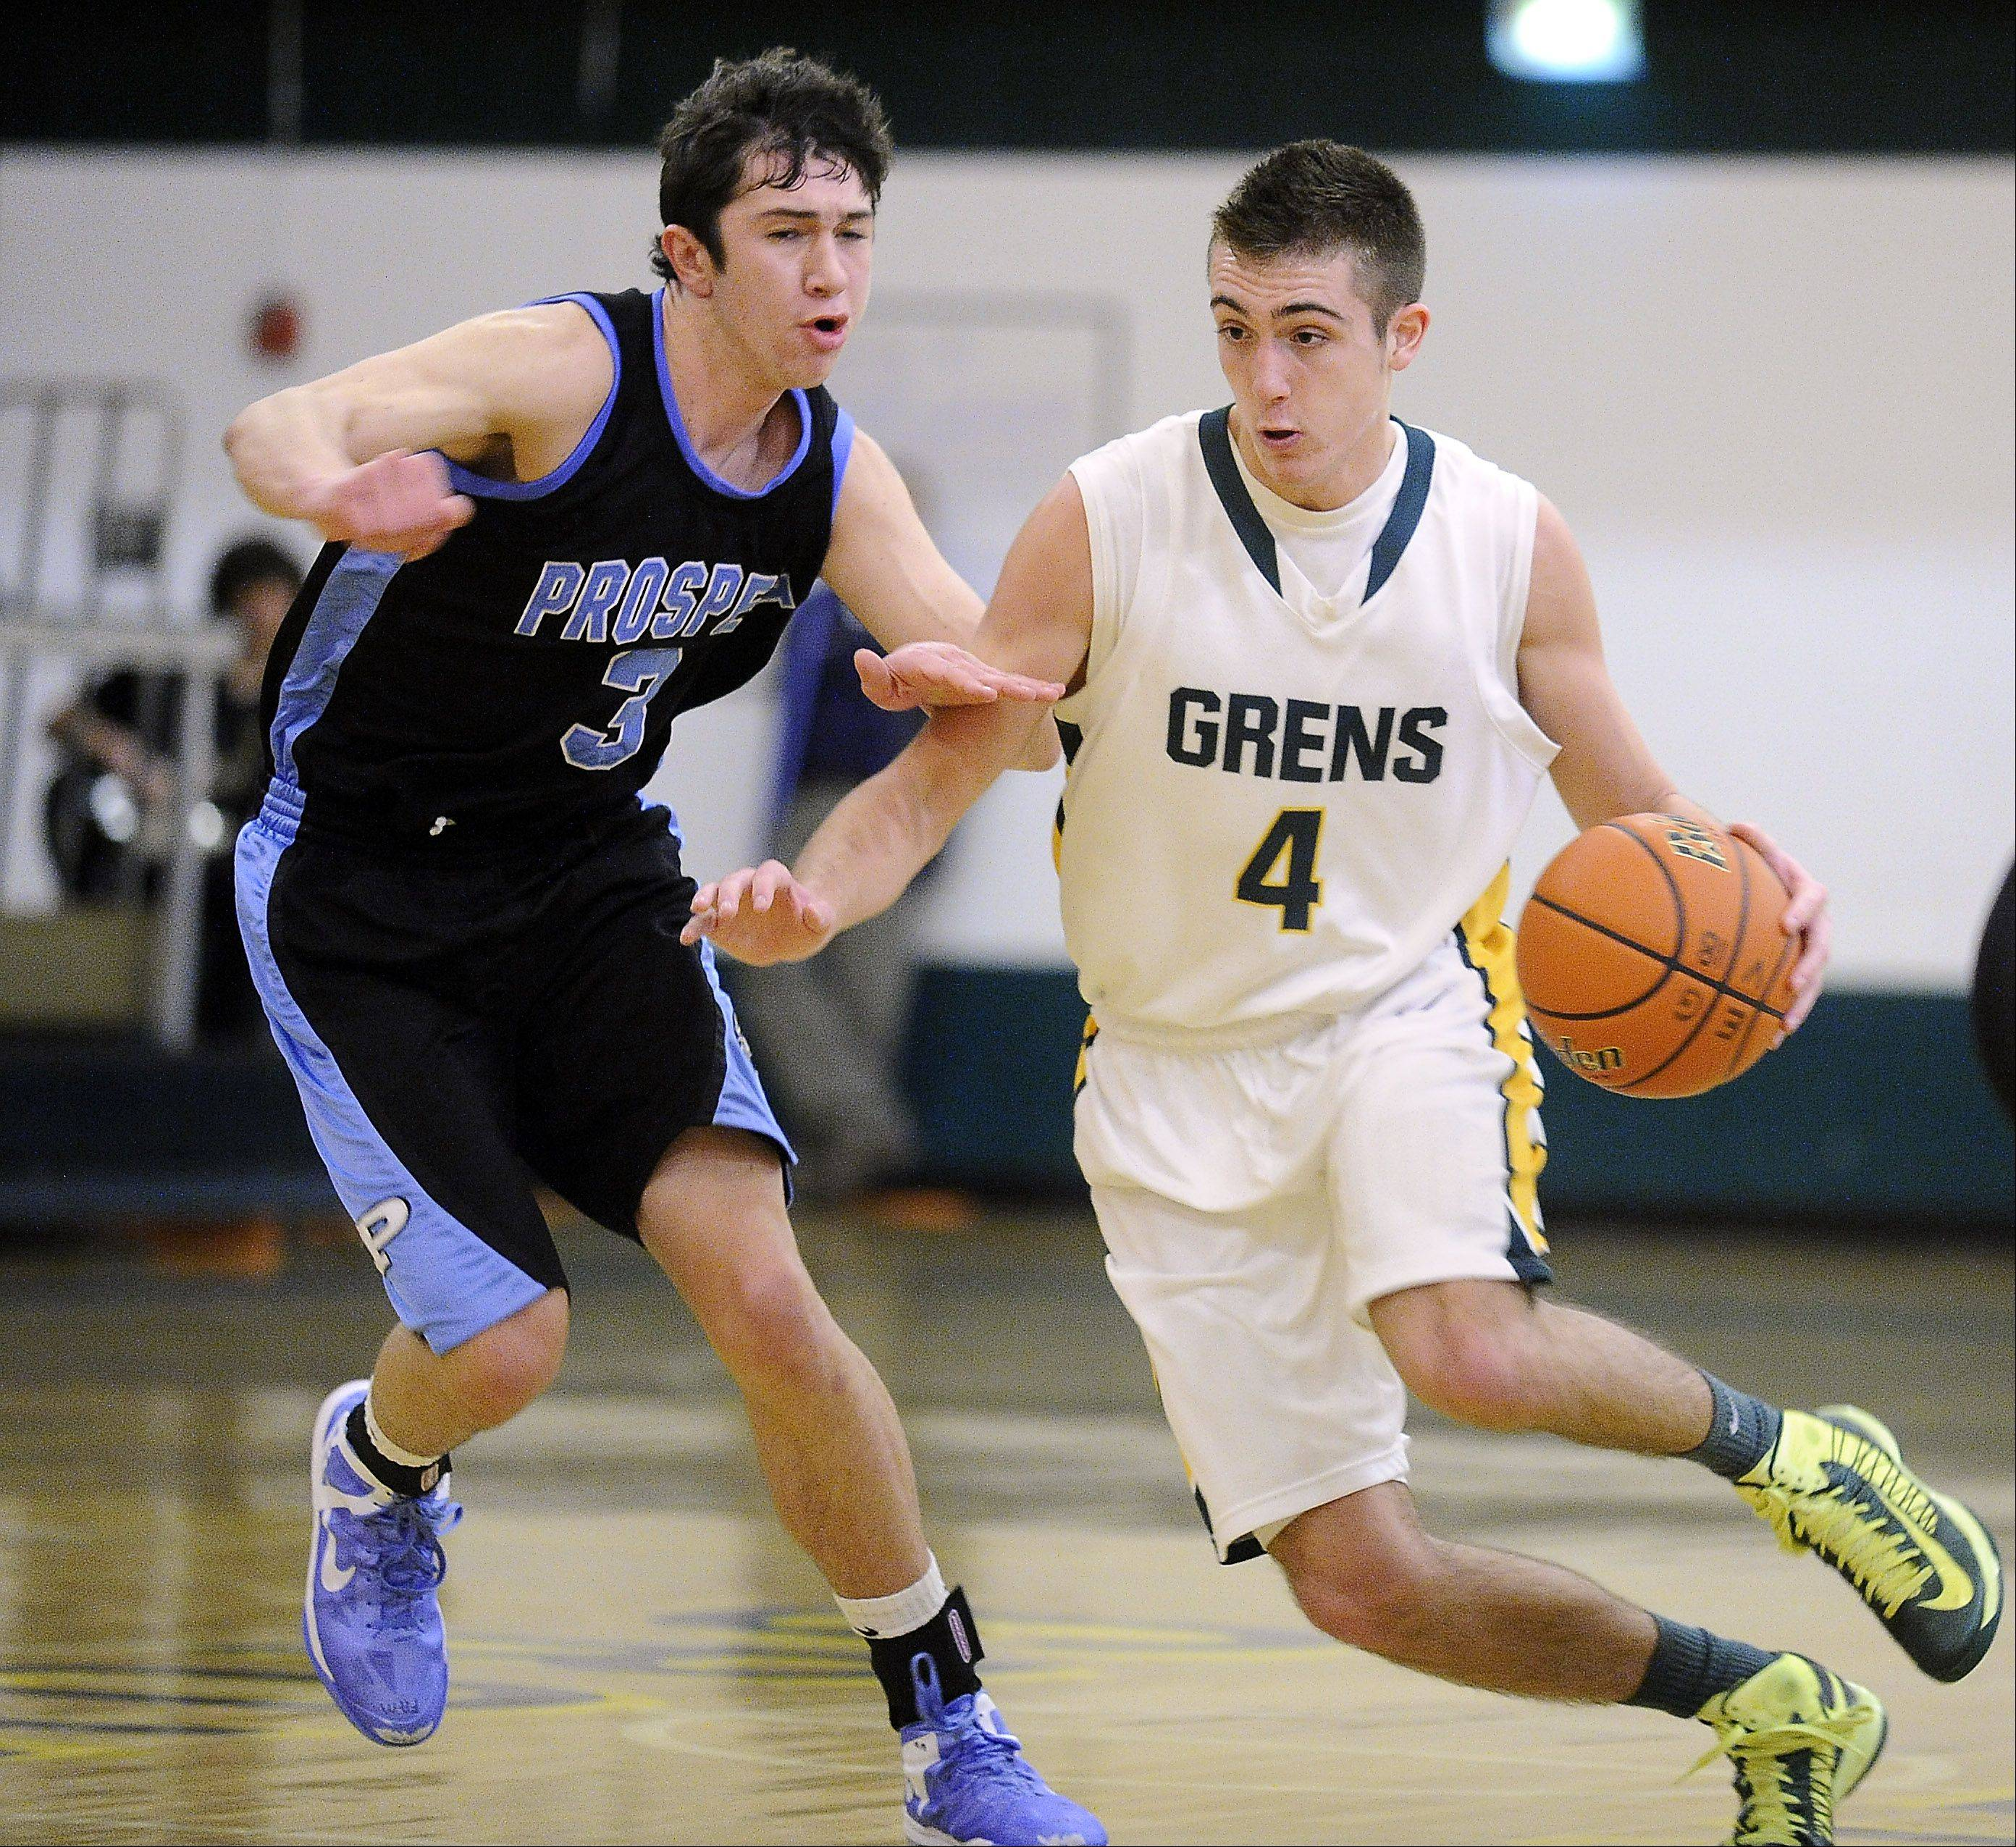 Elk Grove's Austin Amann tries to dribble-drive around Prospect's Bobby Frasco en route to the basket at Elk Grove.